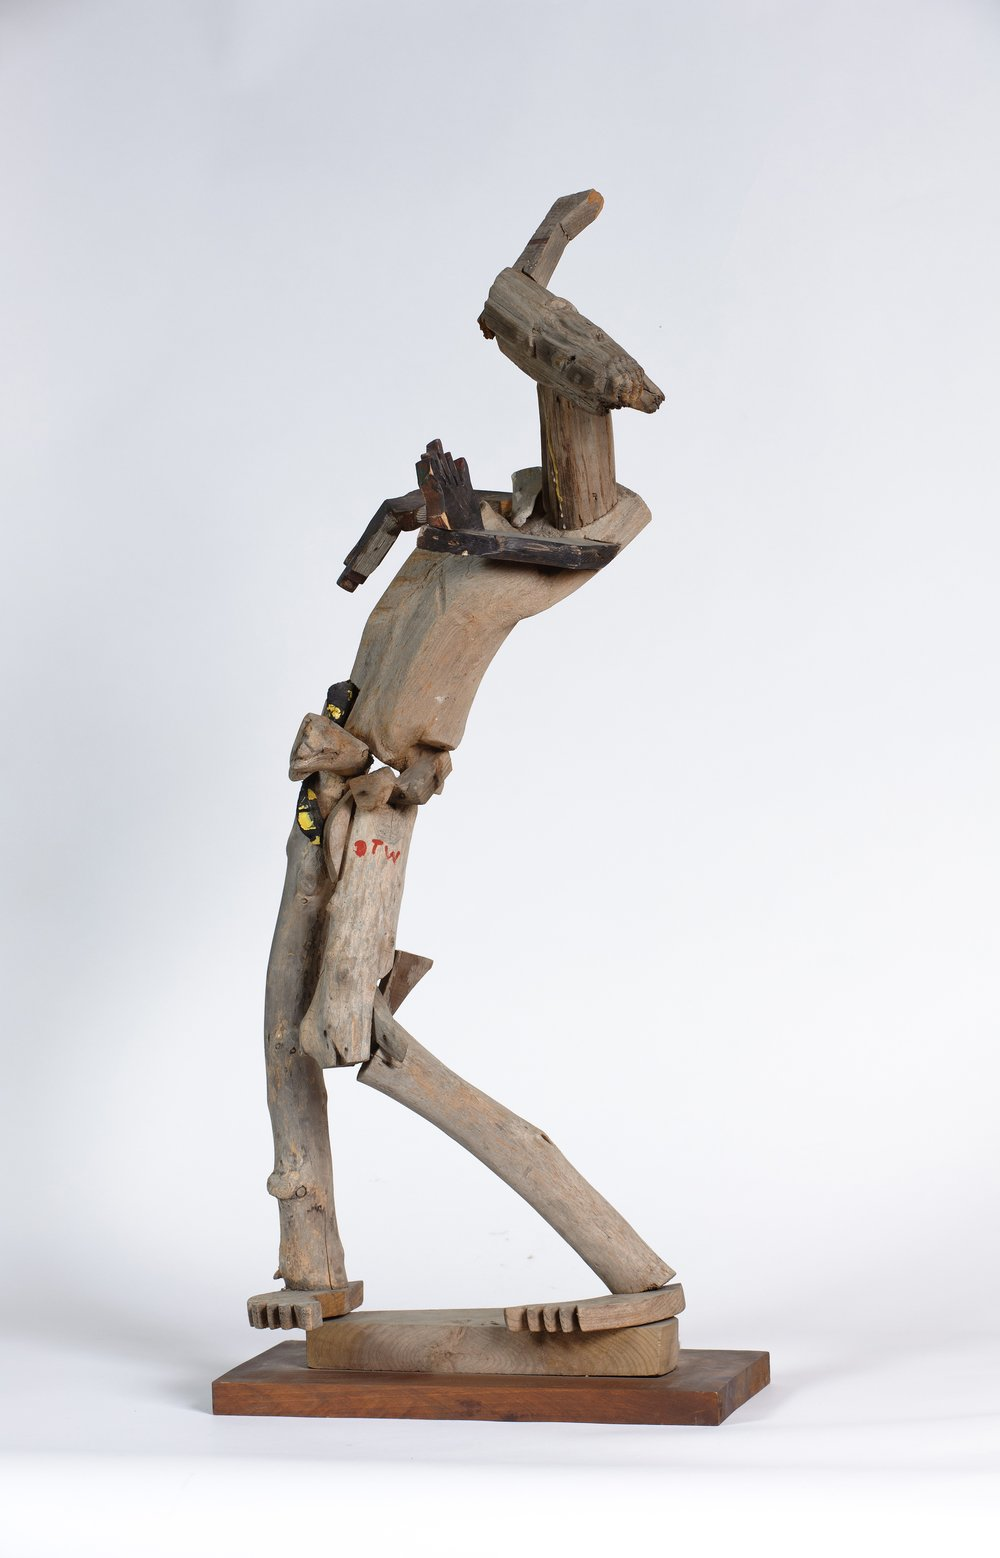 Derek Webster (American, 1934-2009).  Untitled (Figural sculpture) , n.d. Wood, 36 x 17 x 11 in. Intuit: The Center for Intuitive and Outsider Art, gift of George and Sue Viener, 2011.2